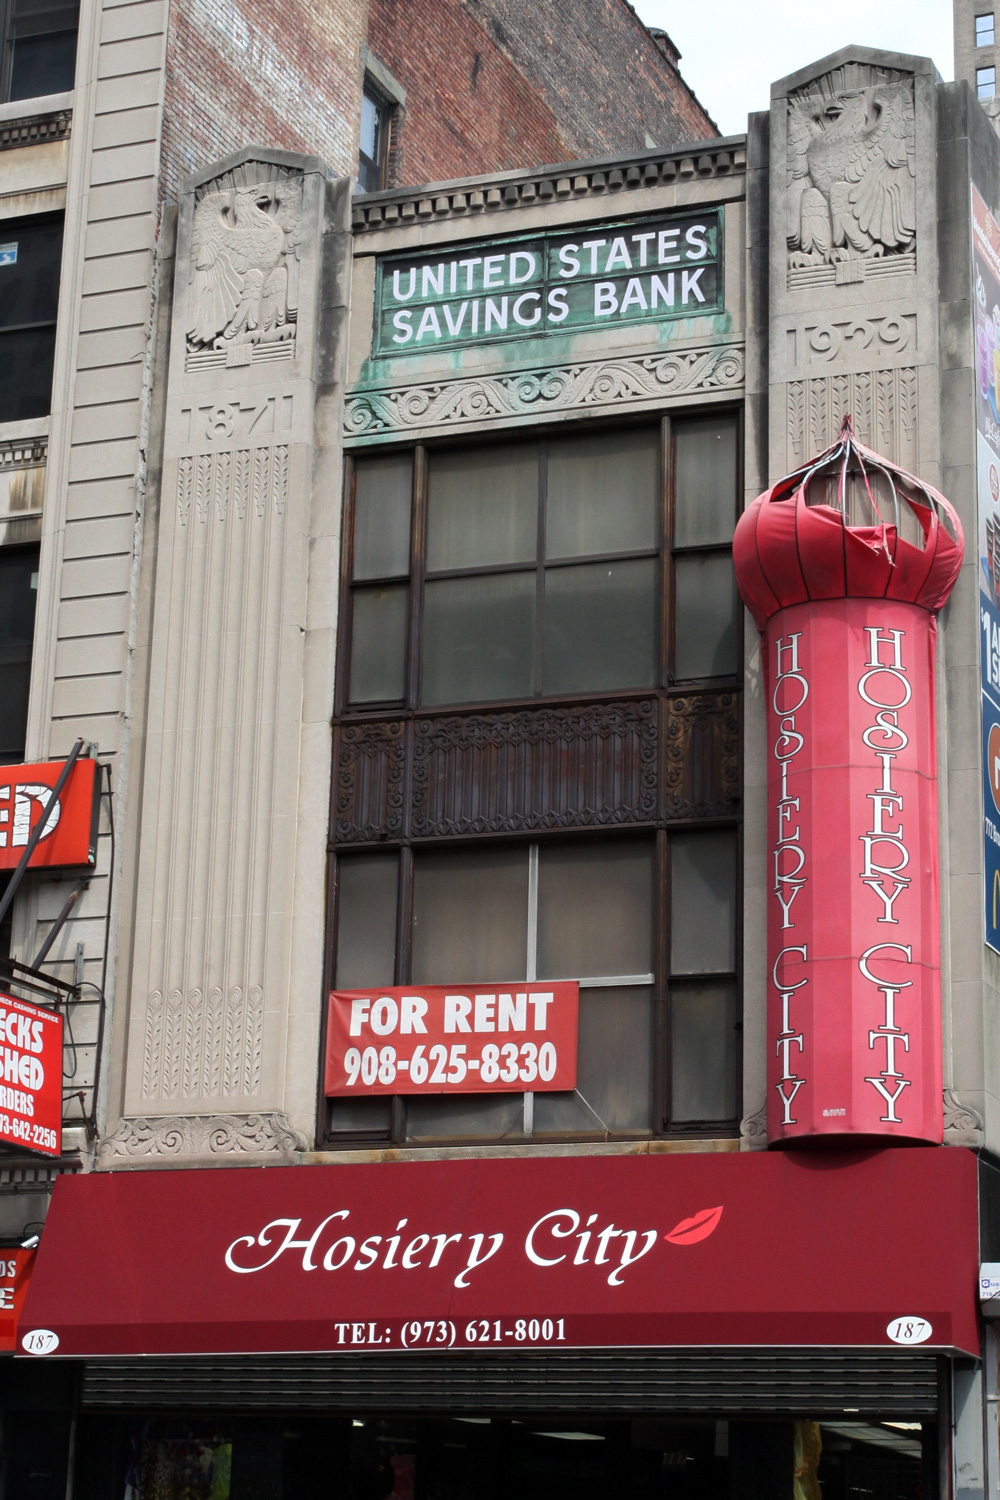 Molly Woodward Vernacular Typography Newark New Jersey United States Savings Bank Ghost Sign